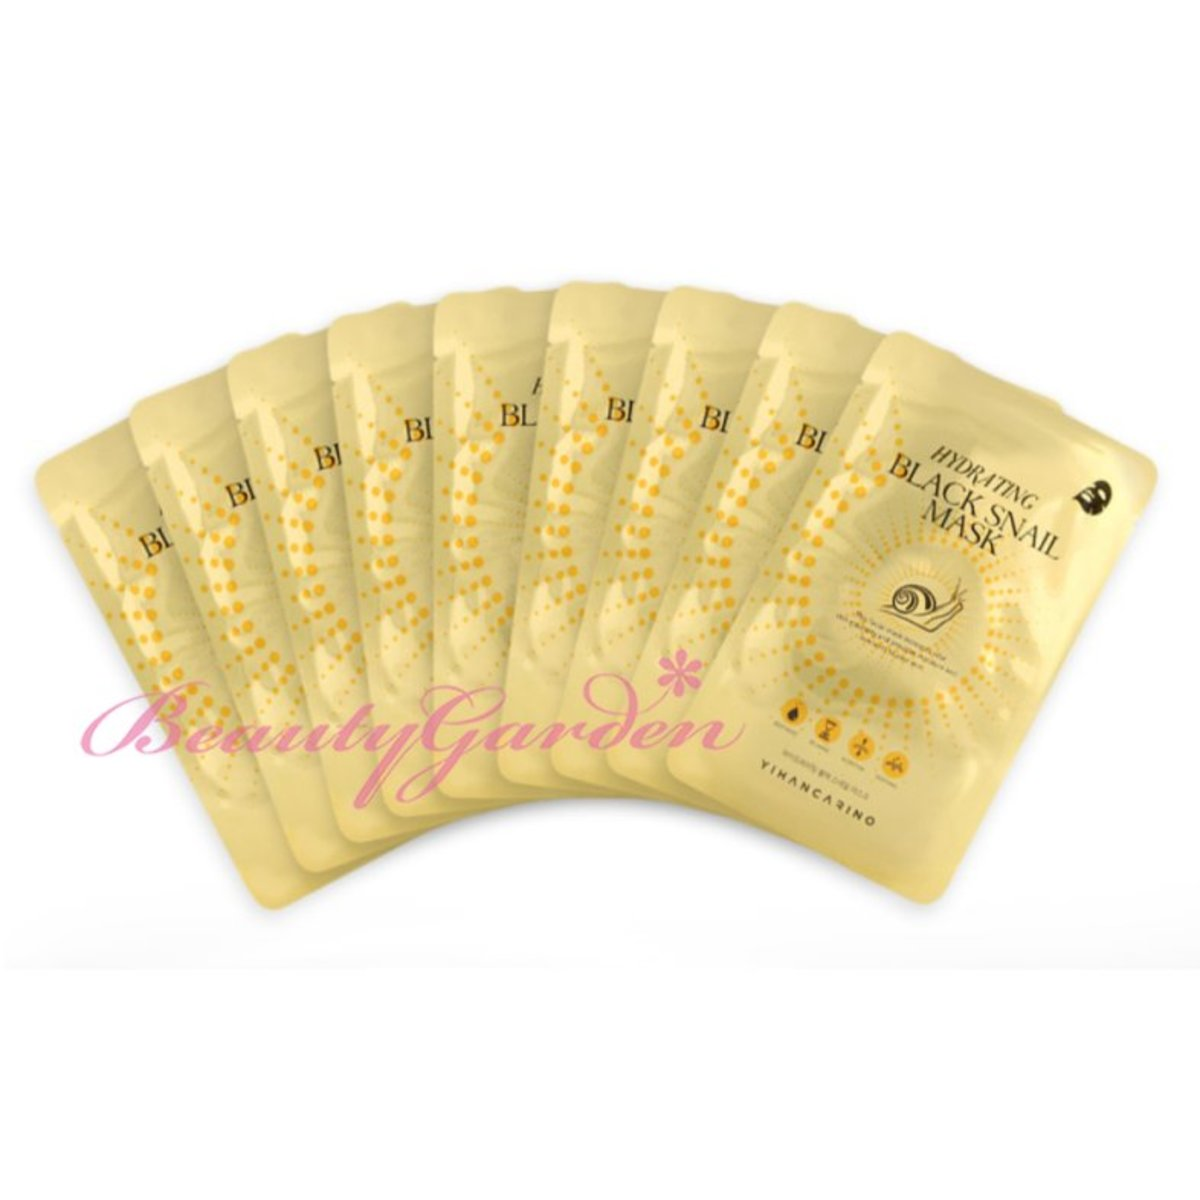 (KOREA) Hydrating Black Snail Mask 10 Sheets - [Parallel Import]